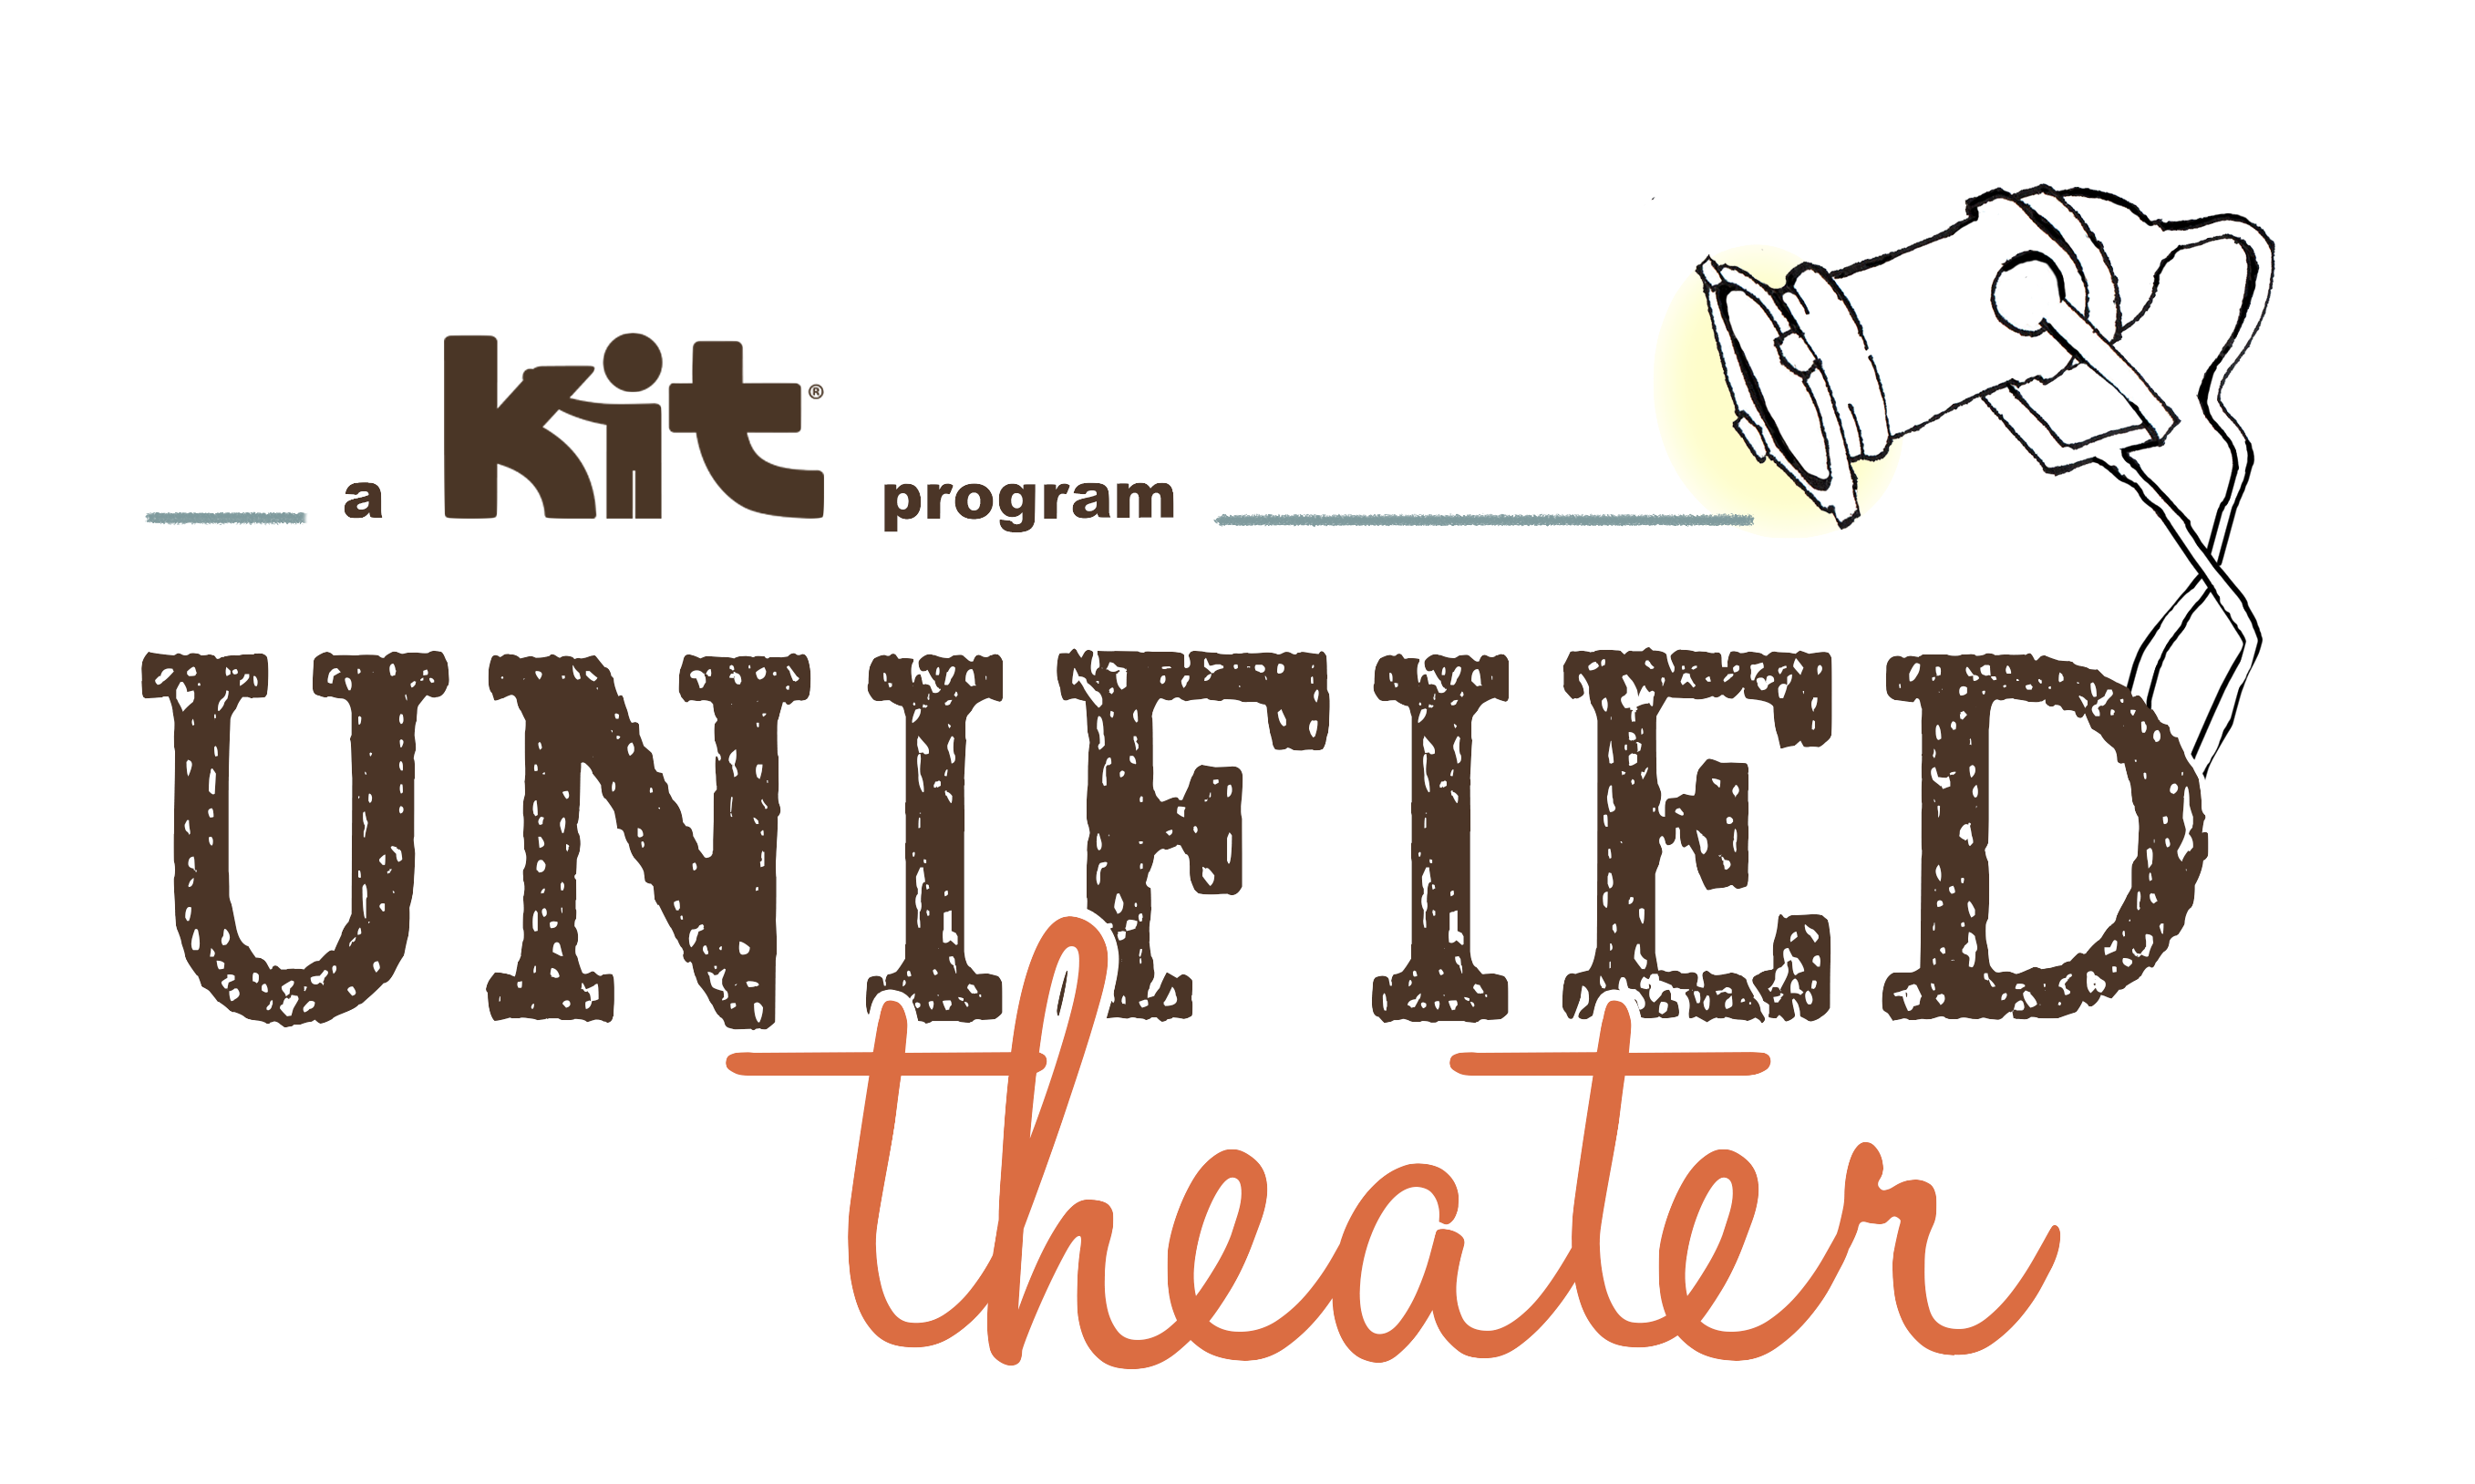 A Kit Program Unified Theater logo